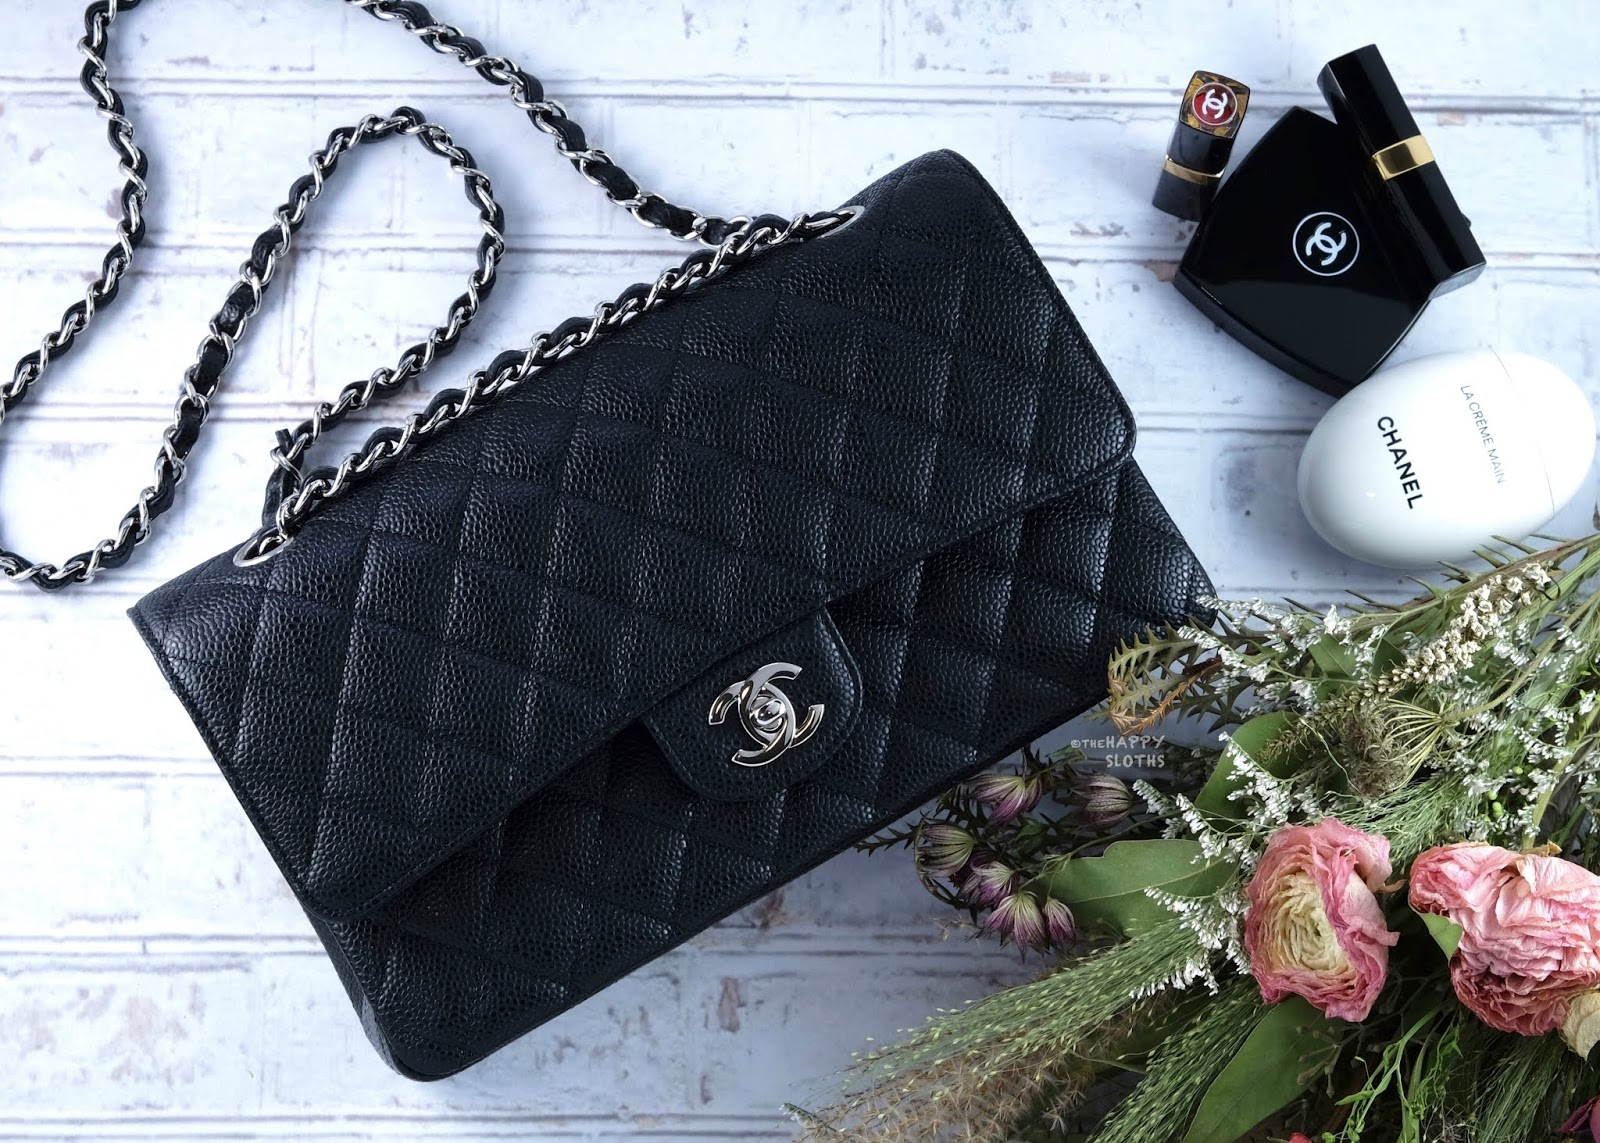 Chanel | Medium Classic Flap Handbag in Black Caviar Leather with Silver Hardware: Review